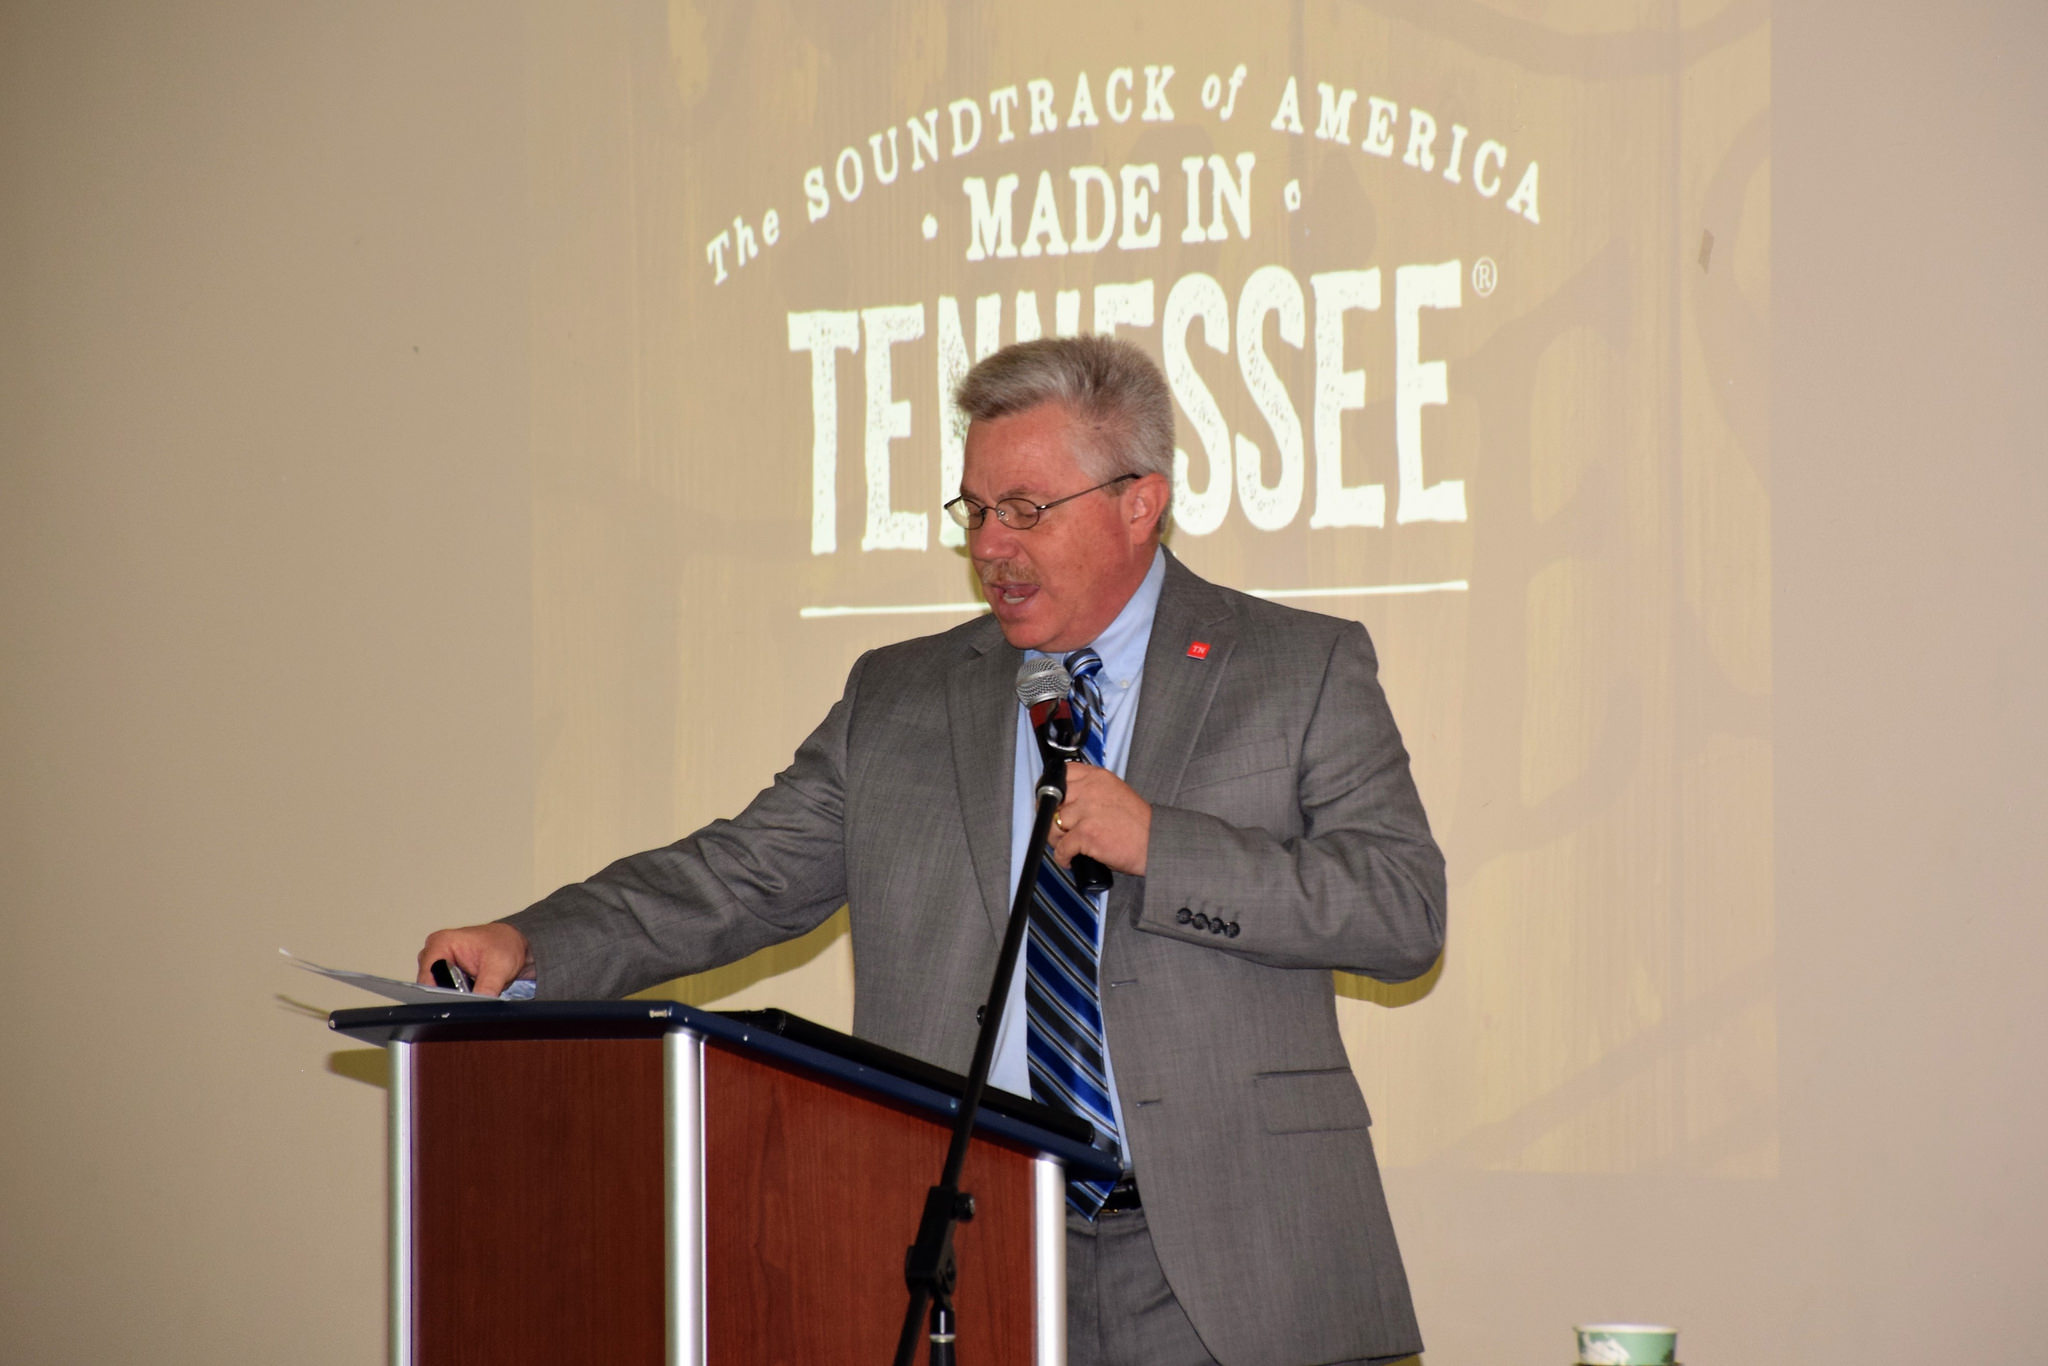 Kevin Triplett, TN Department of Tourist Development, provides a keynote address